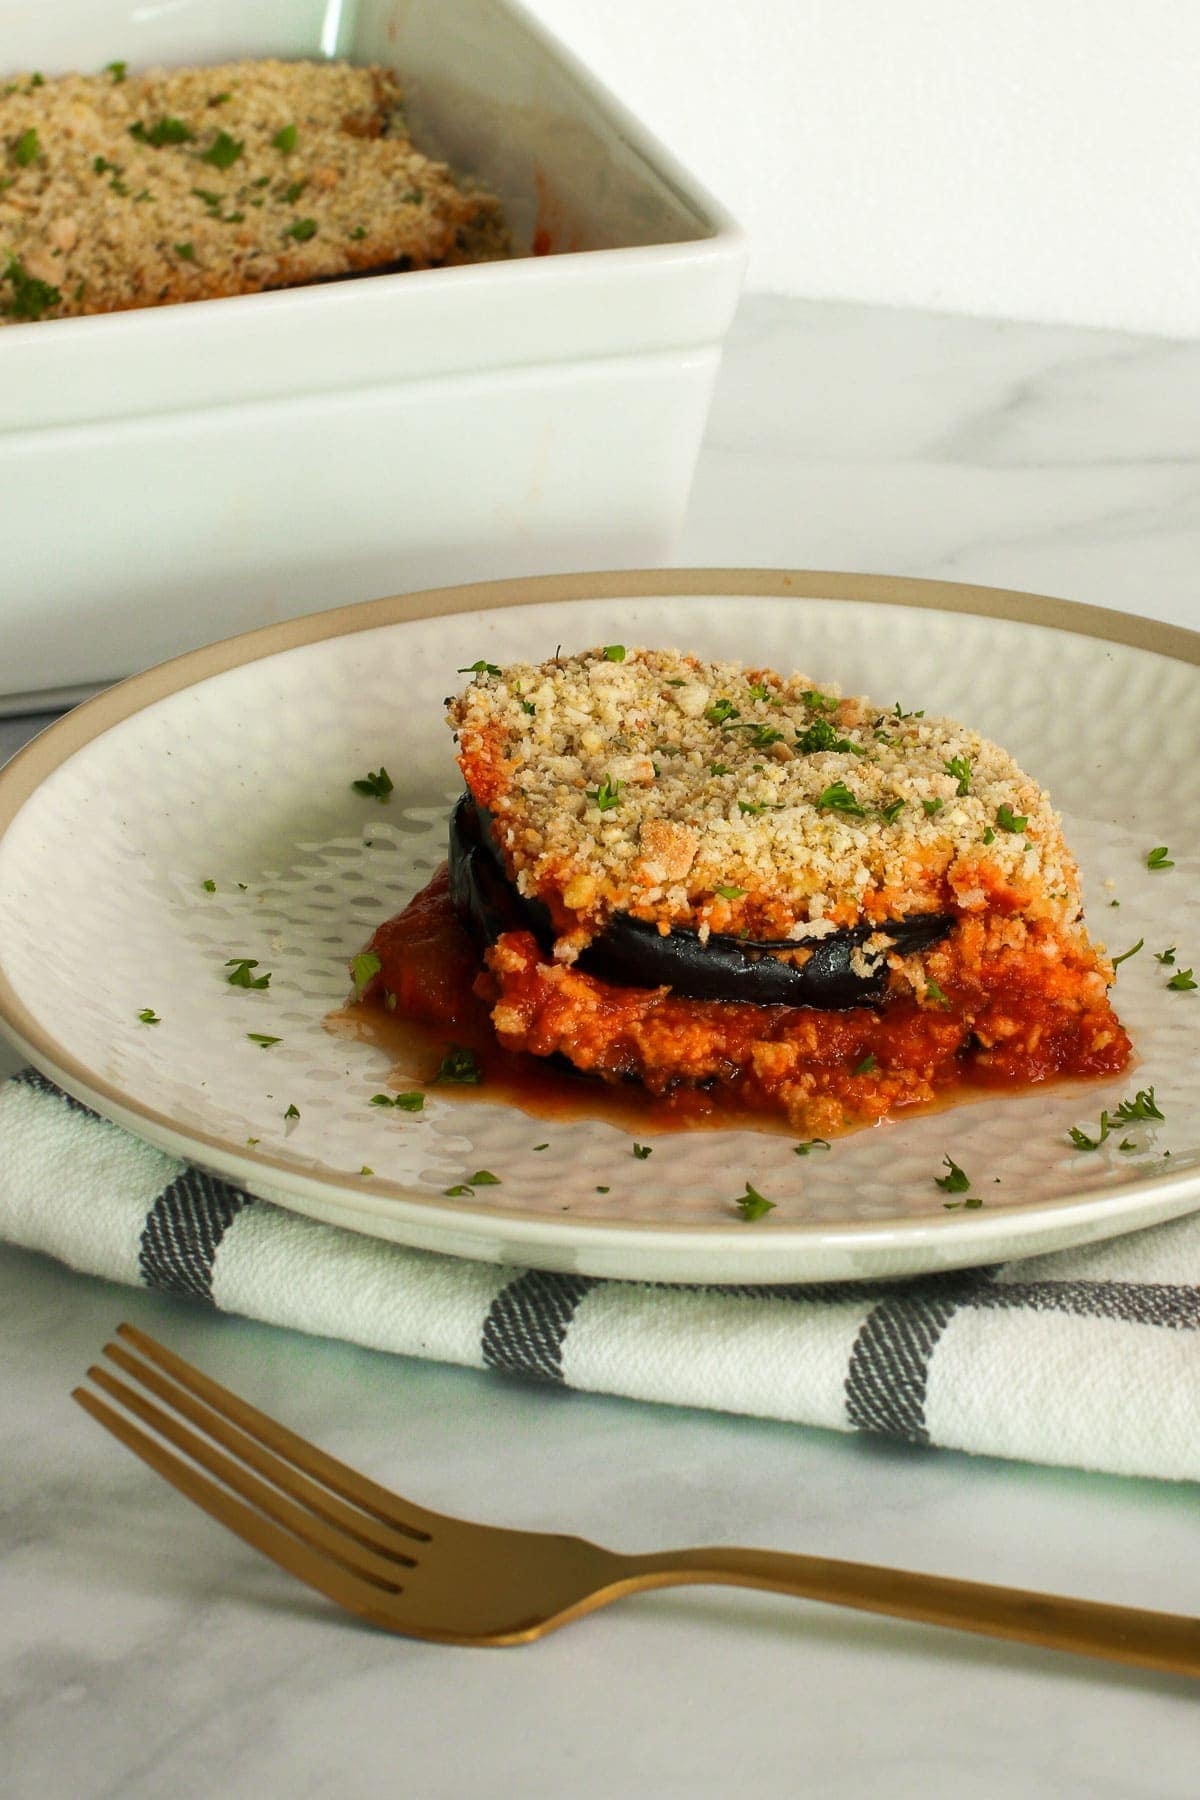 Vegan eggplant Parmesan slice on a white plate, with casserole dish in background. Gold fork, black plaid napkin.